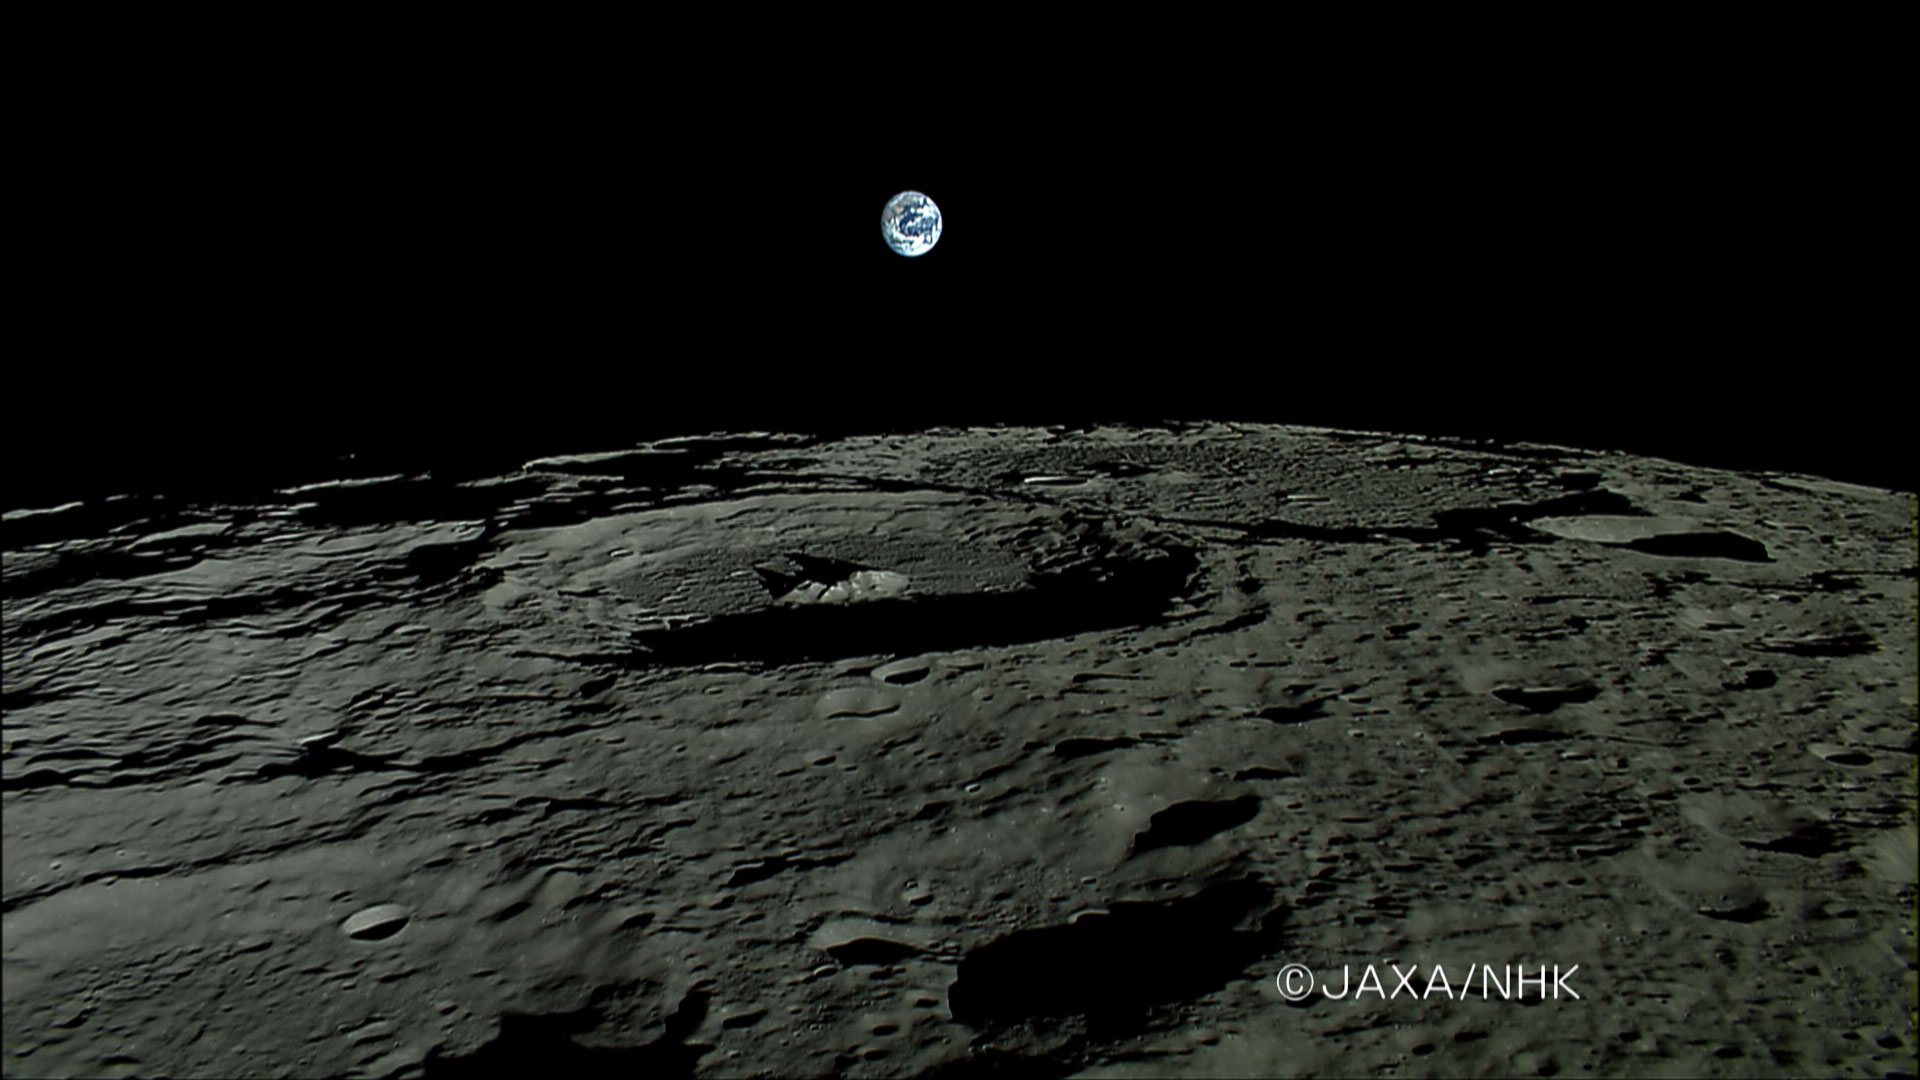 surface of moon as seen from earth - photo #7